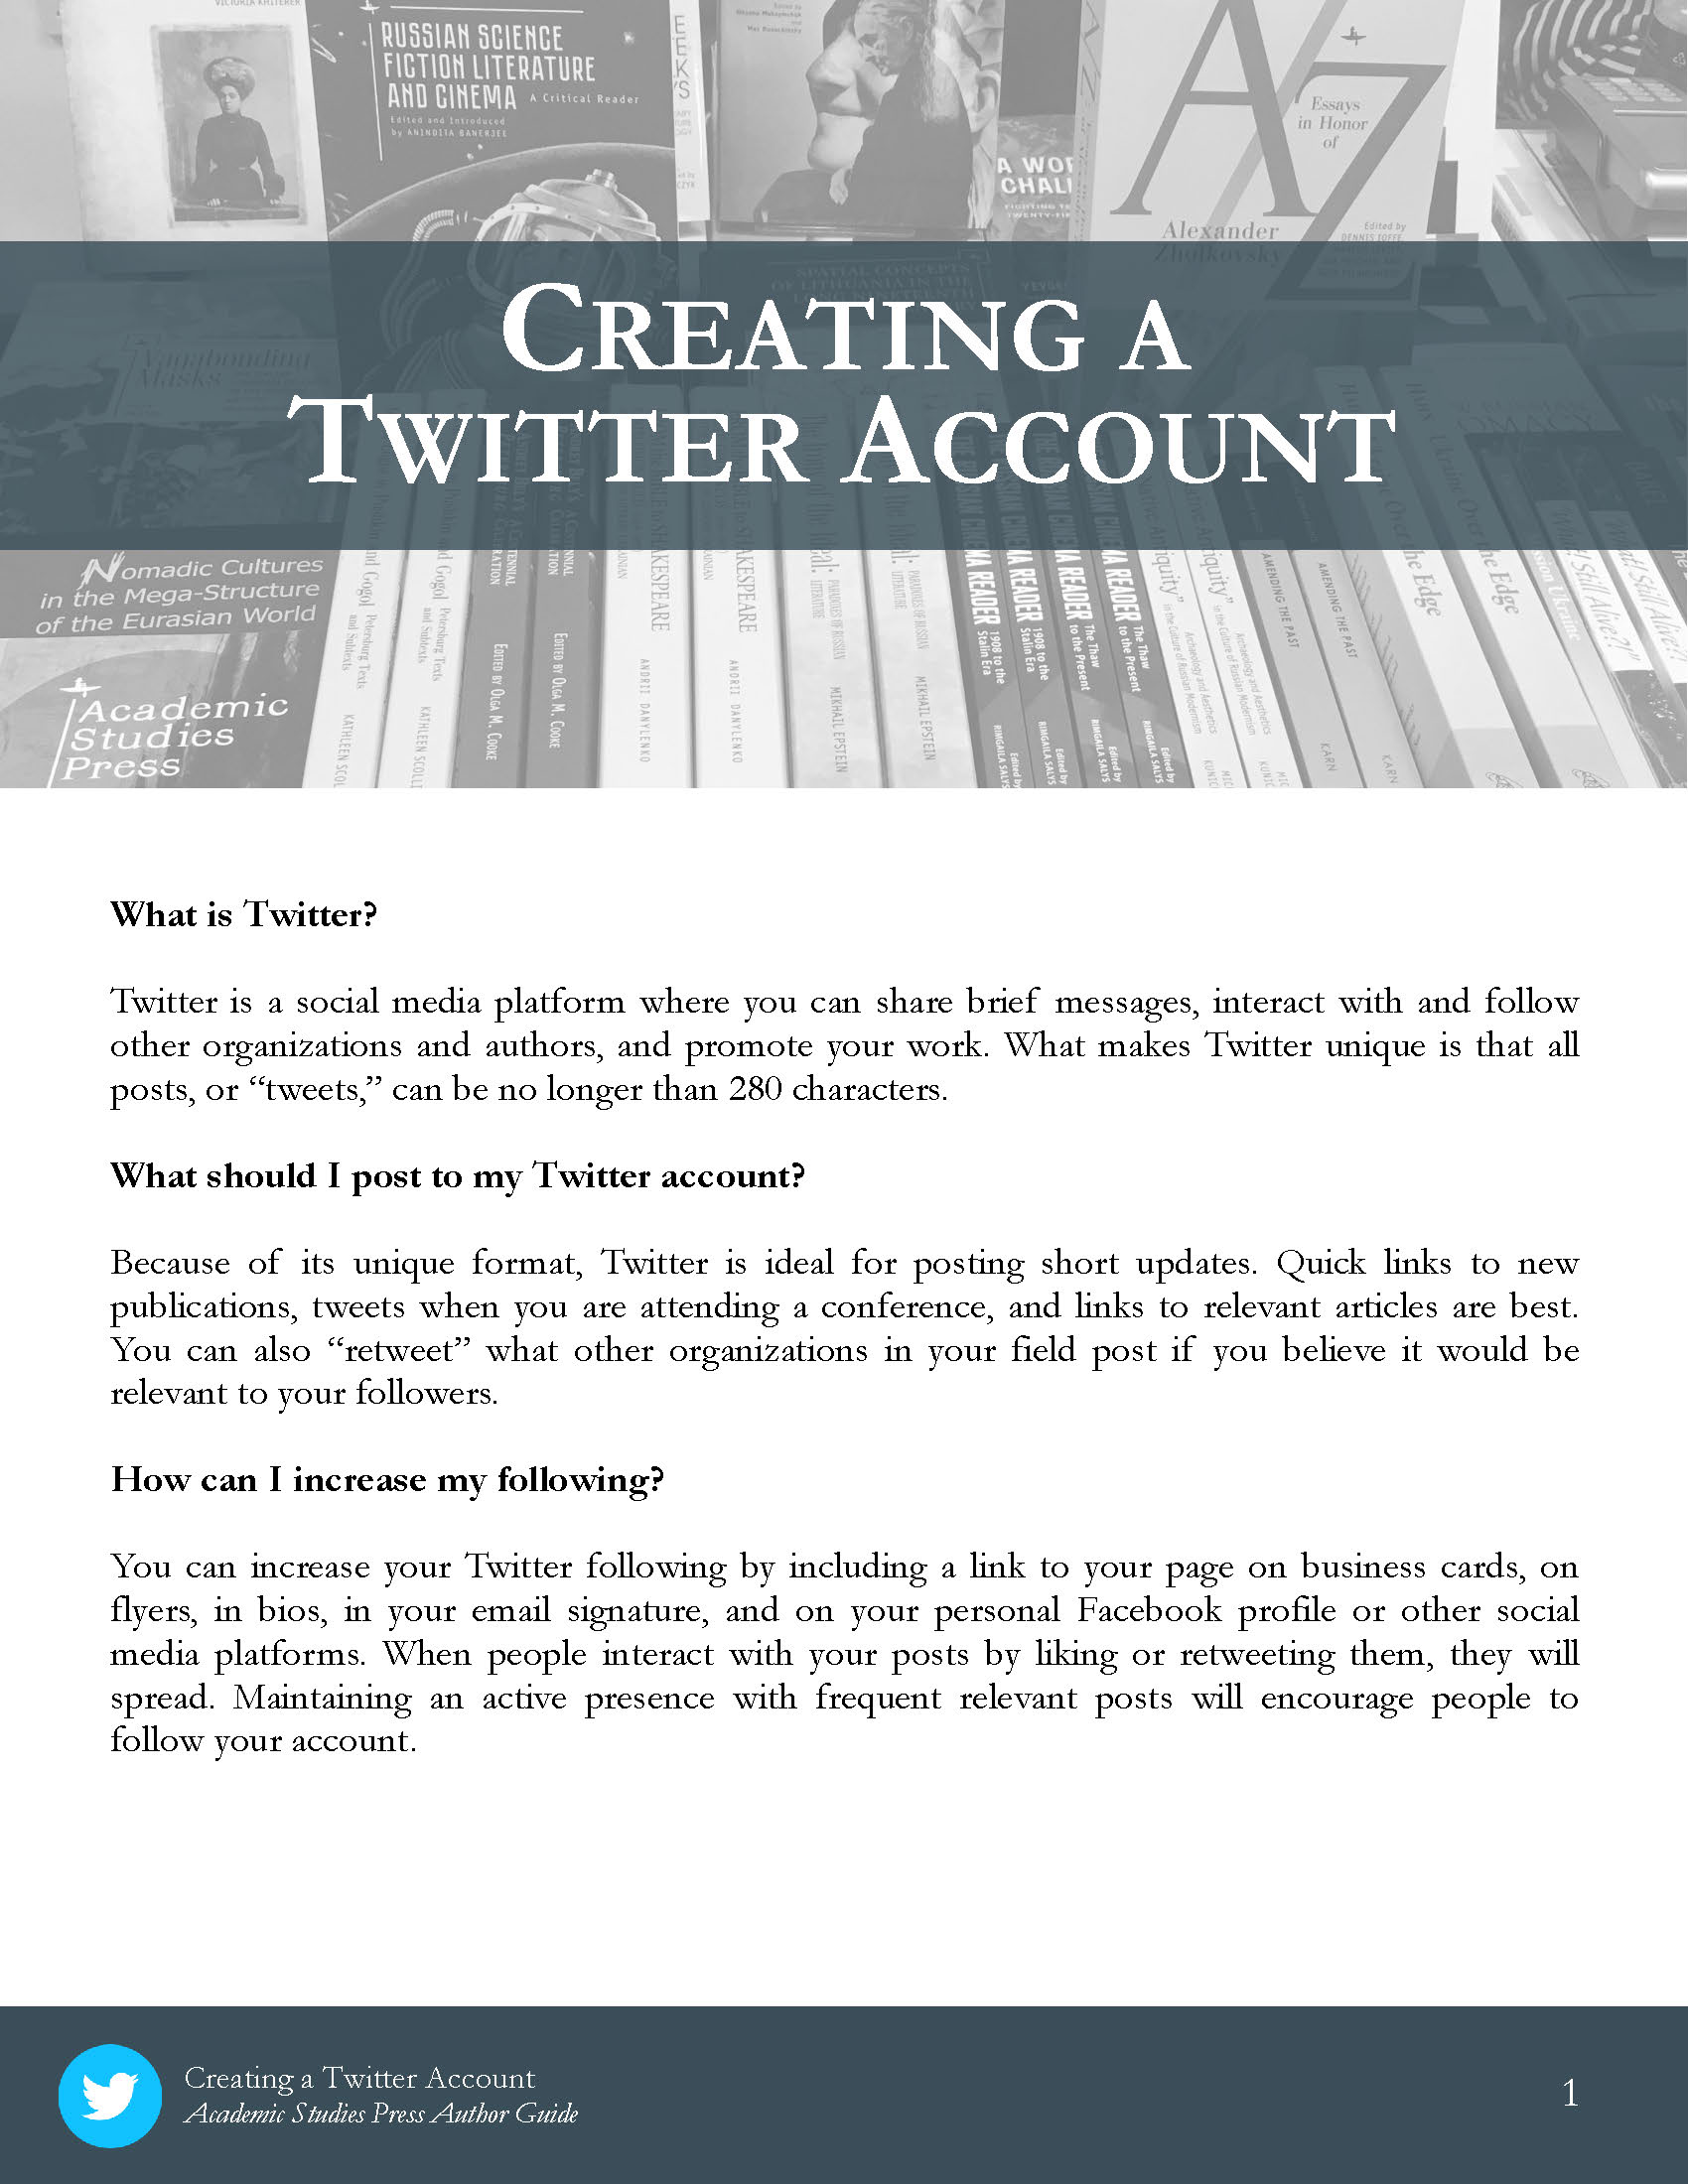 Author Guide: Creating a Twitter Account